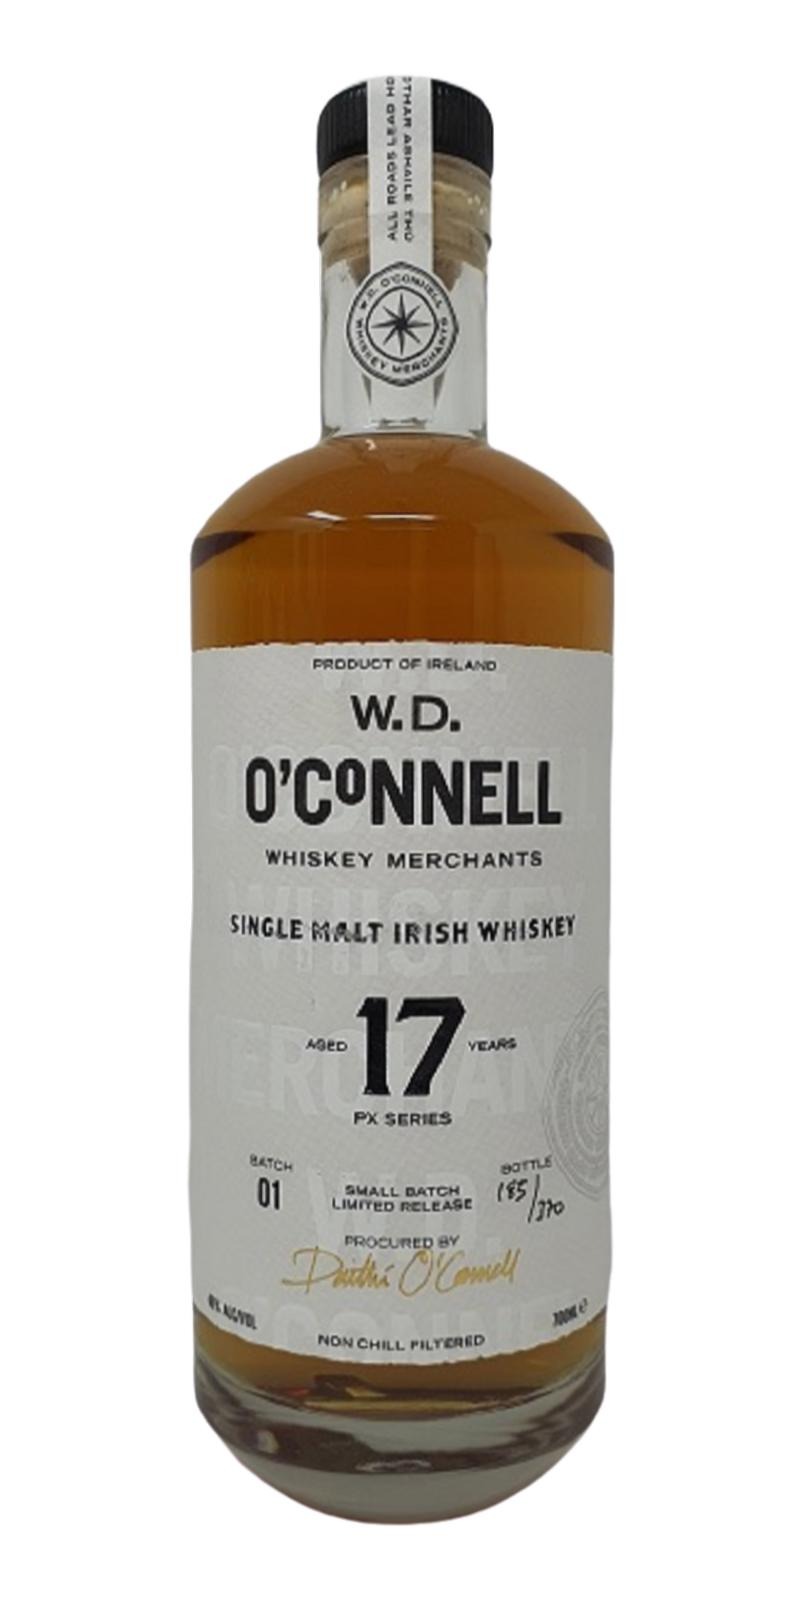 W.D. O'Connell 17-year-old